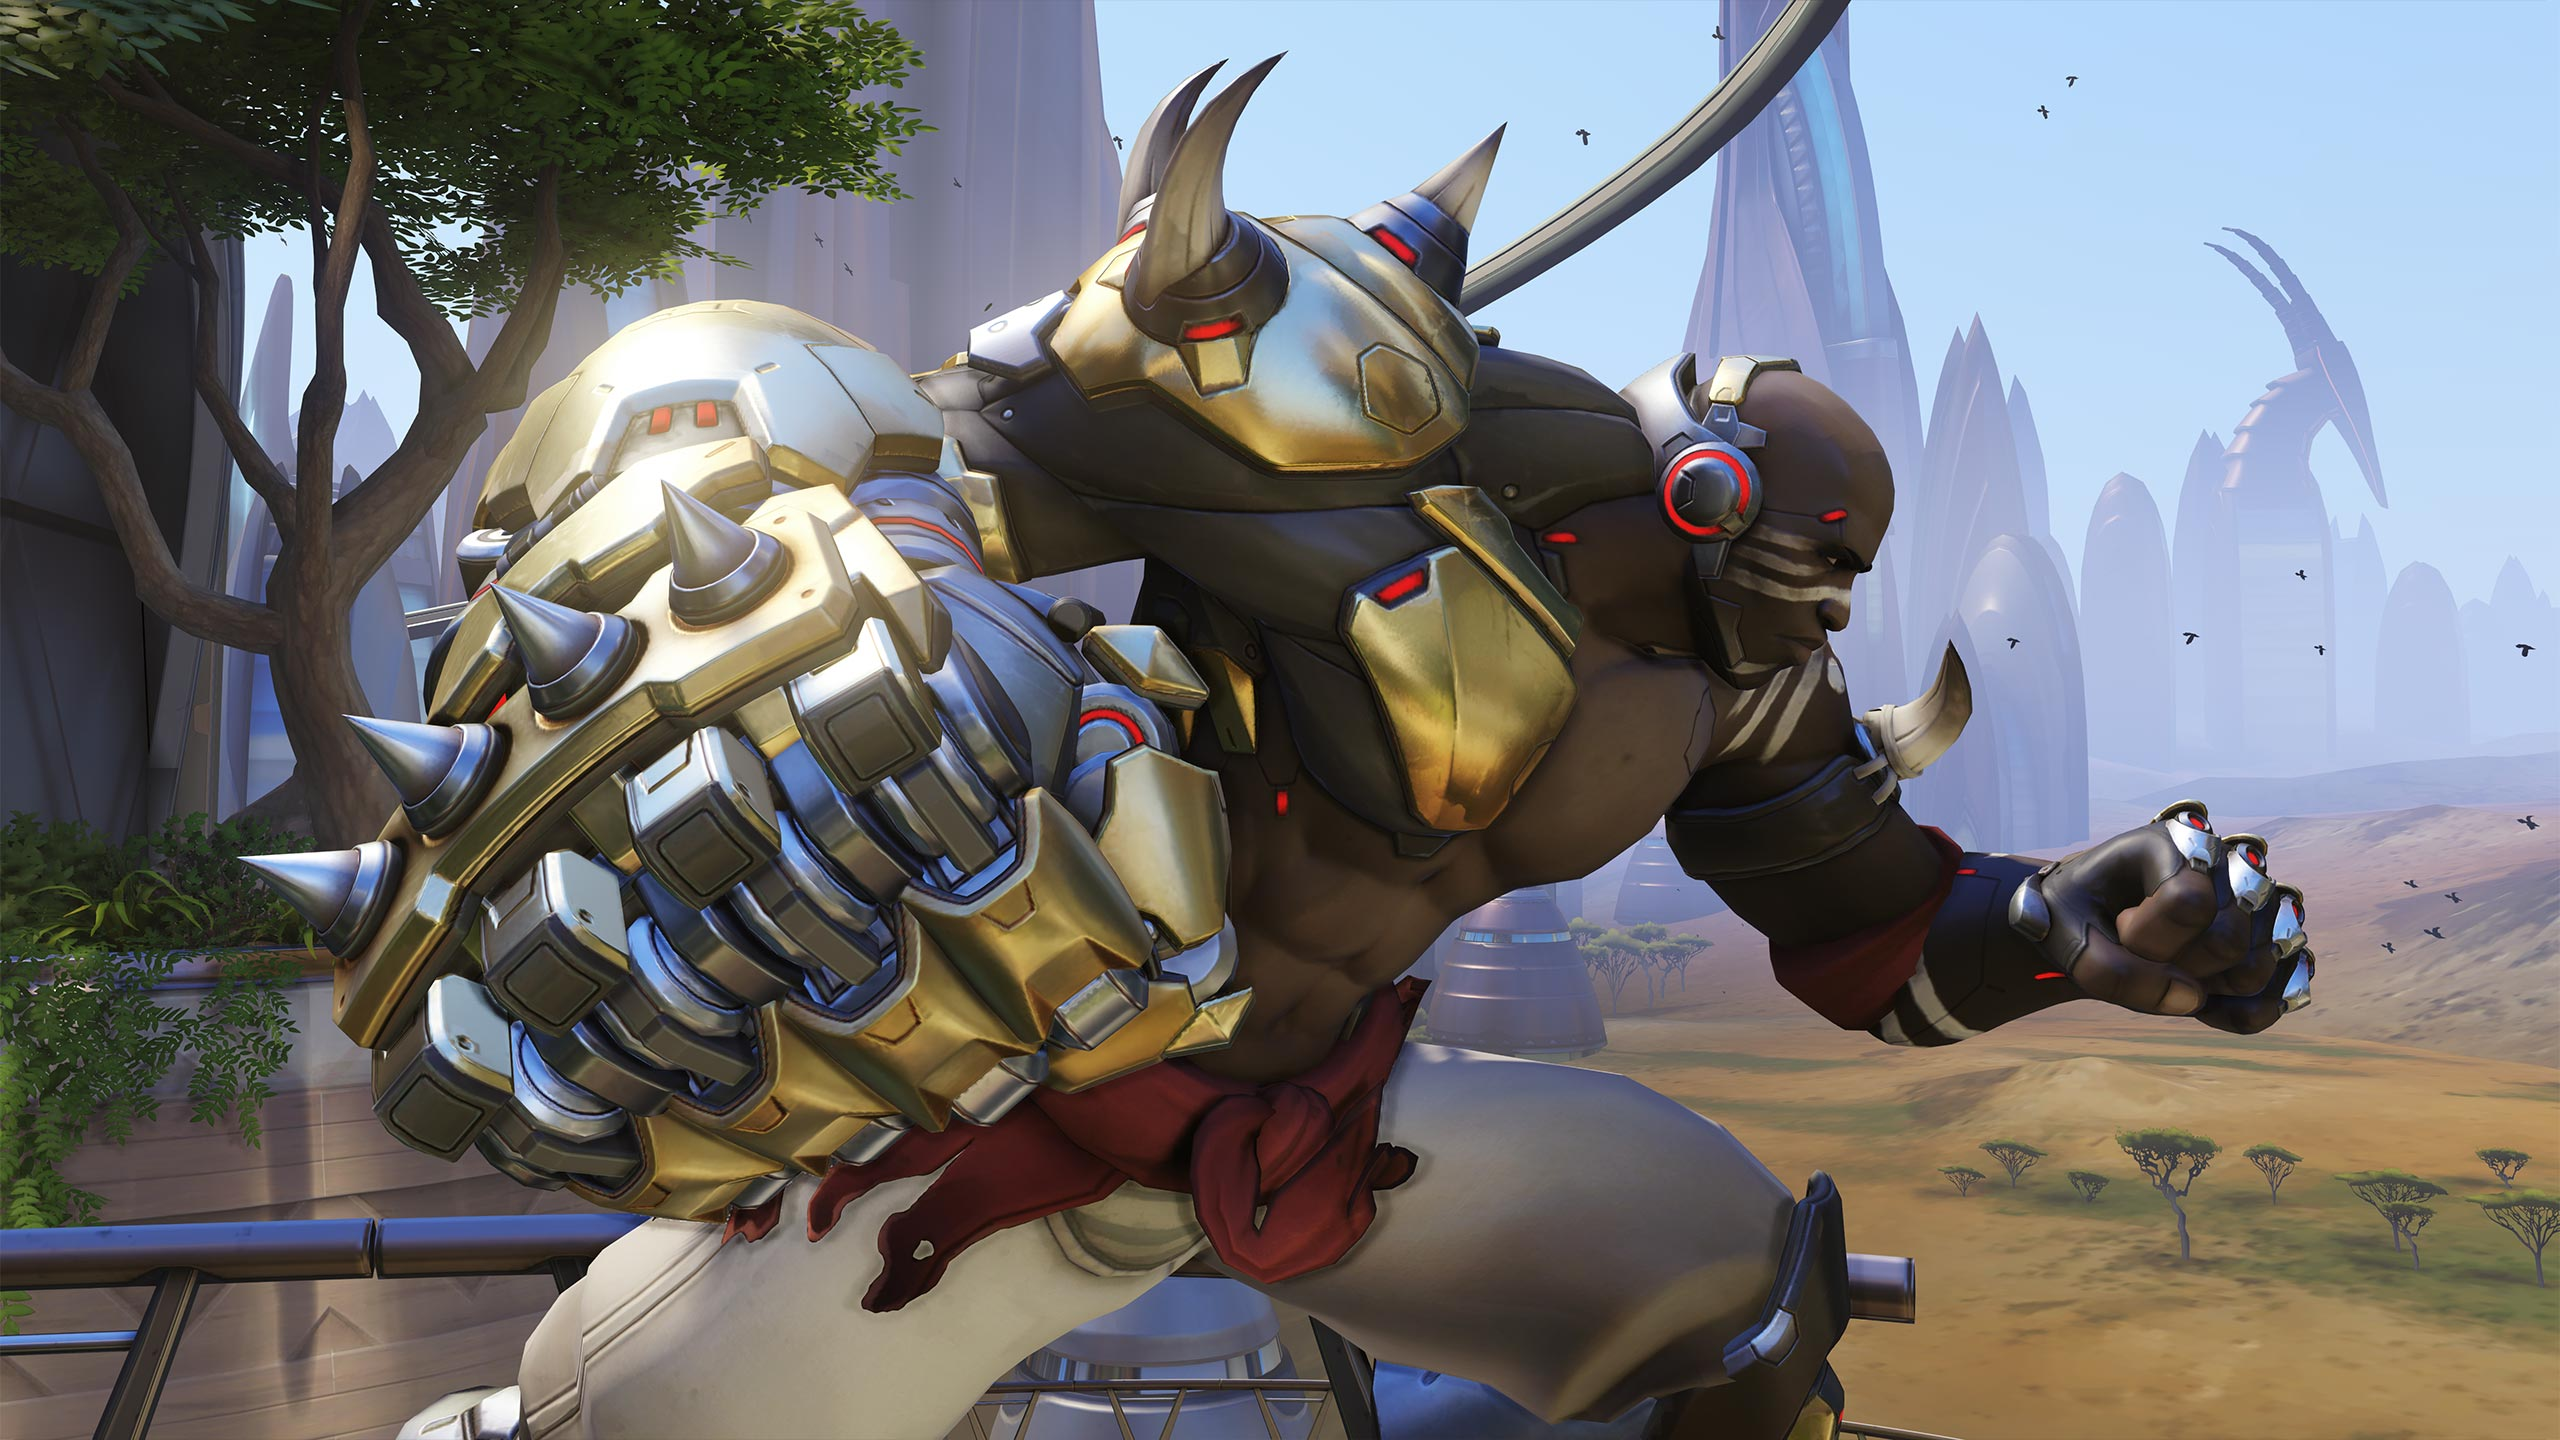 Overwatch Dev Hyping Up Doomfist, Real Name Revealed